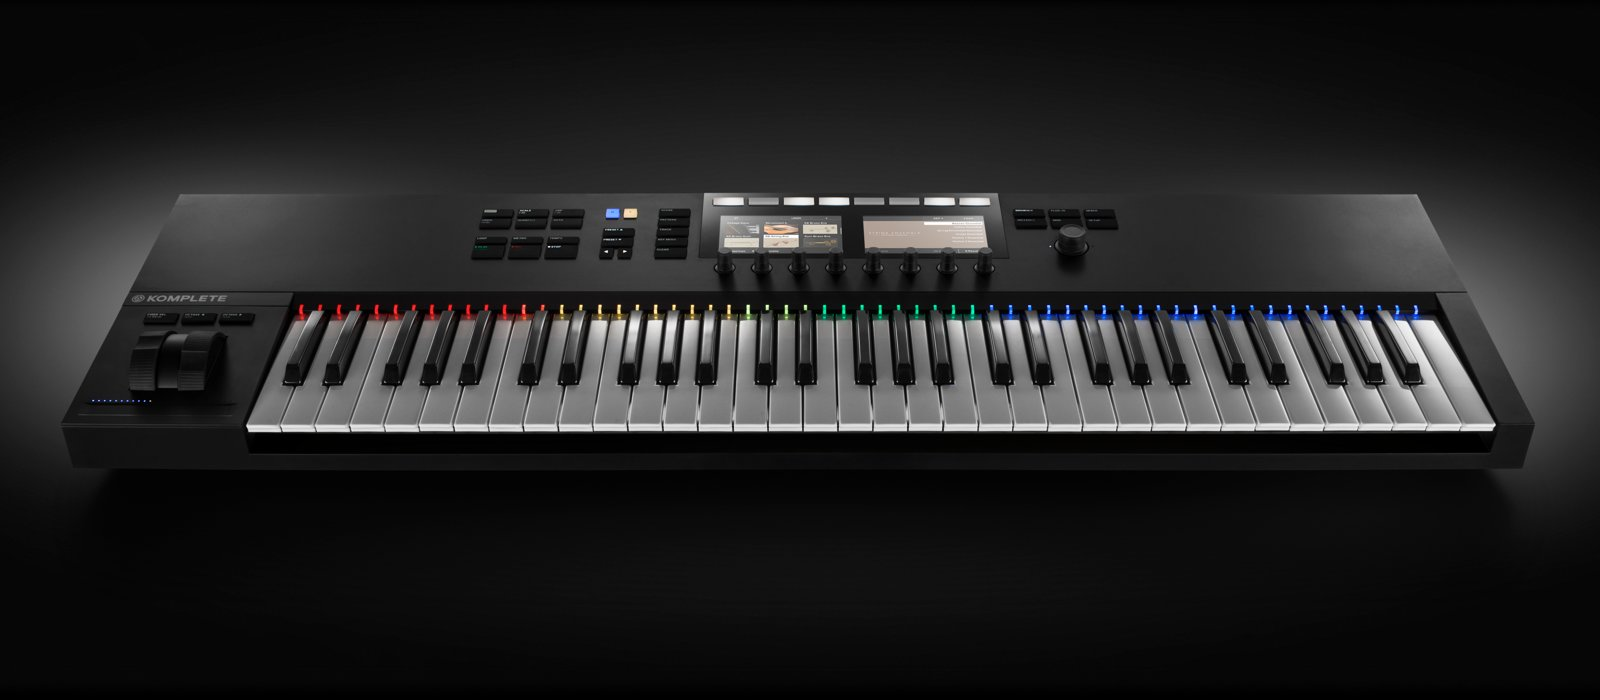 music production keyboard controller ni komplete kontrol s49 s61 mk2. Black Bedroom Furniture Sets. Home Design Ideas